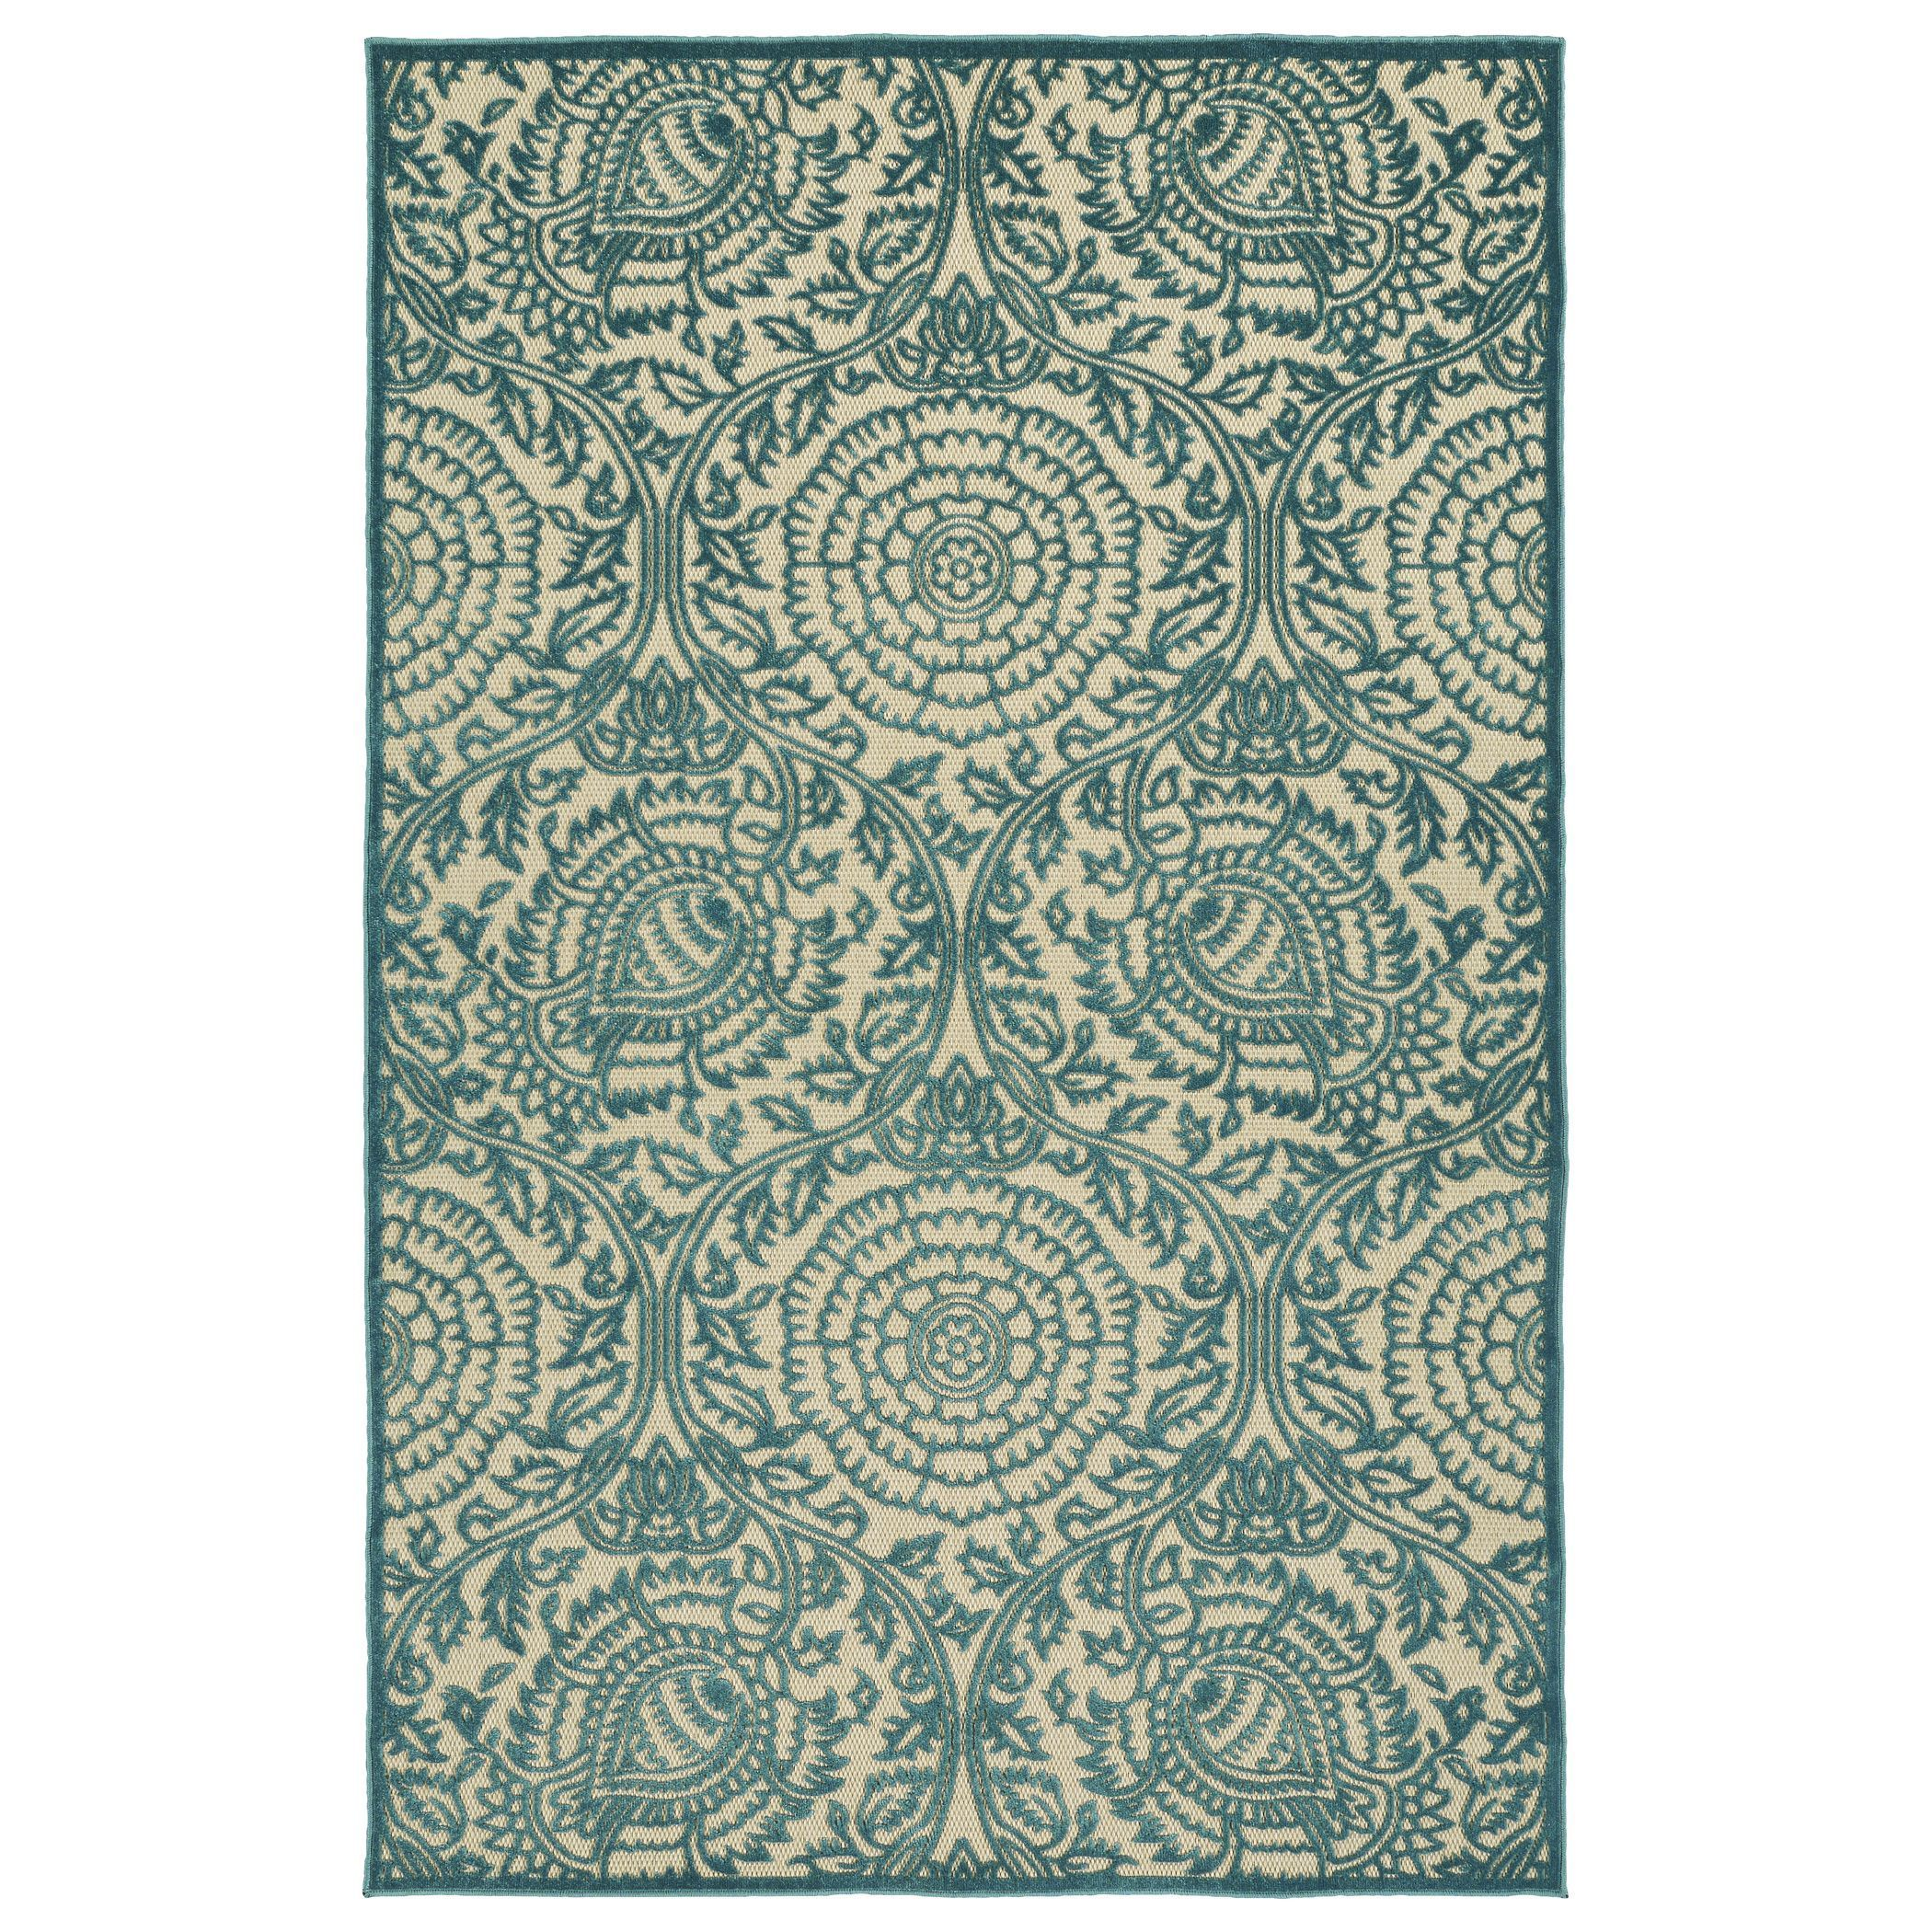 Machine-Made in Turkey of 100% Polypropylene, this easy to clean Indoor/Outdoor rug is UV protected and mildew resistant for many seasons of durability.  Detailed Colors: Light Blue, Beige